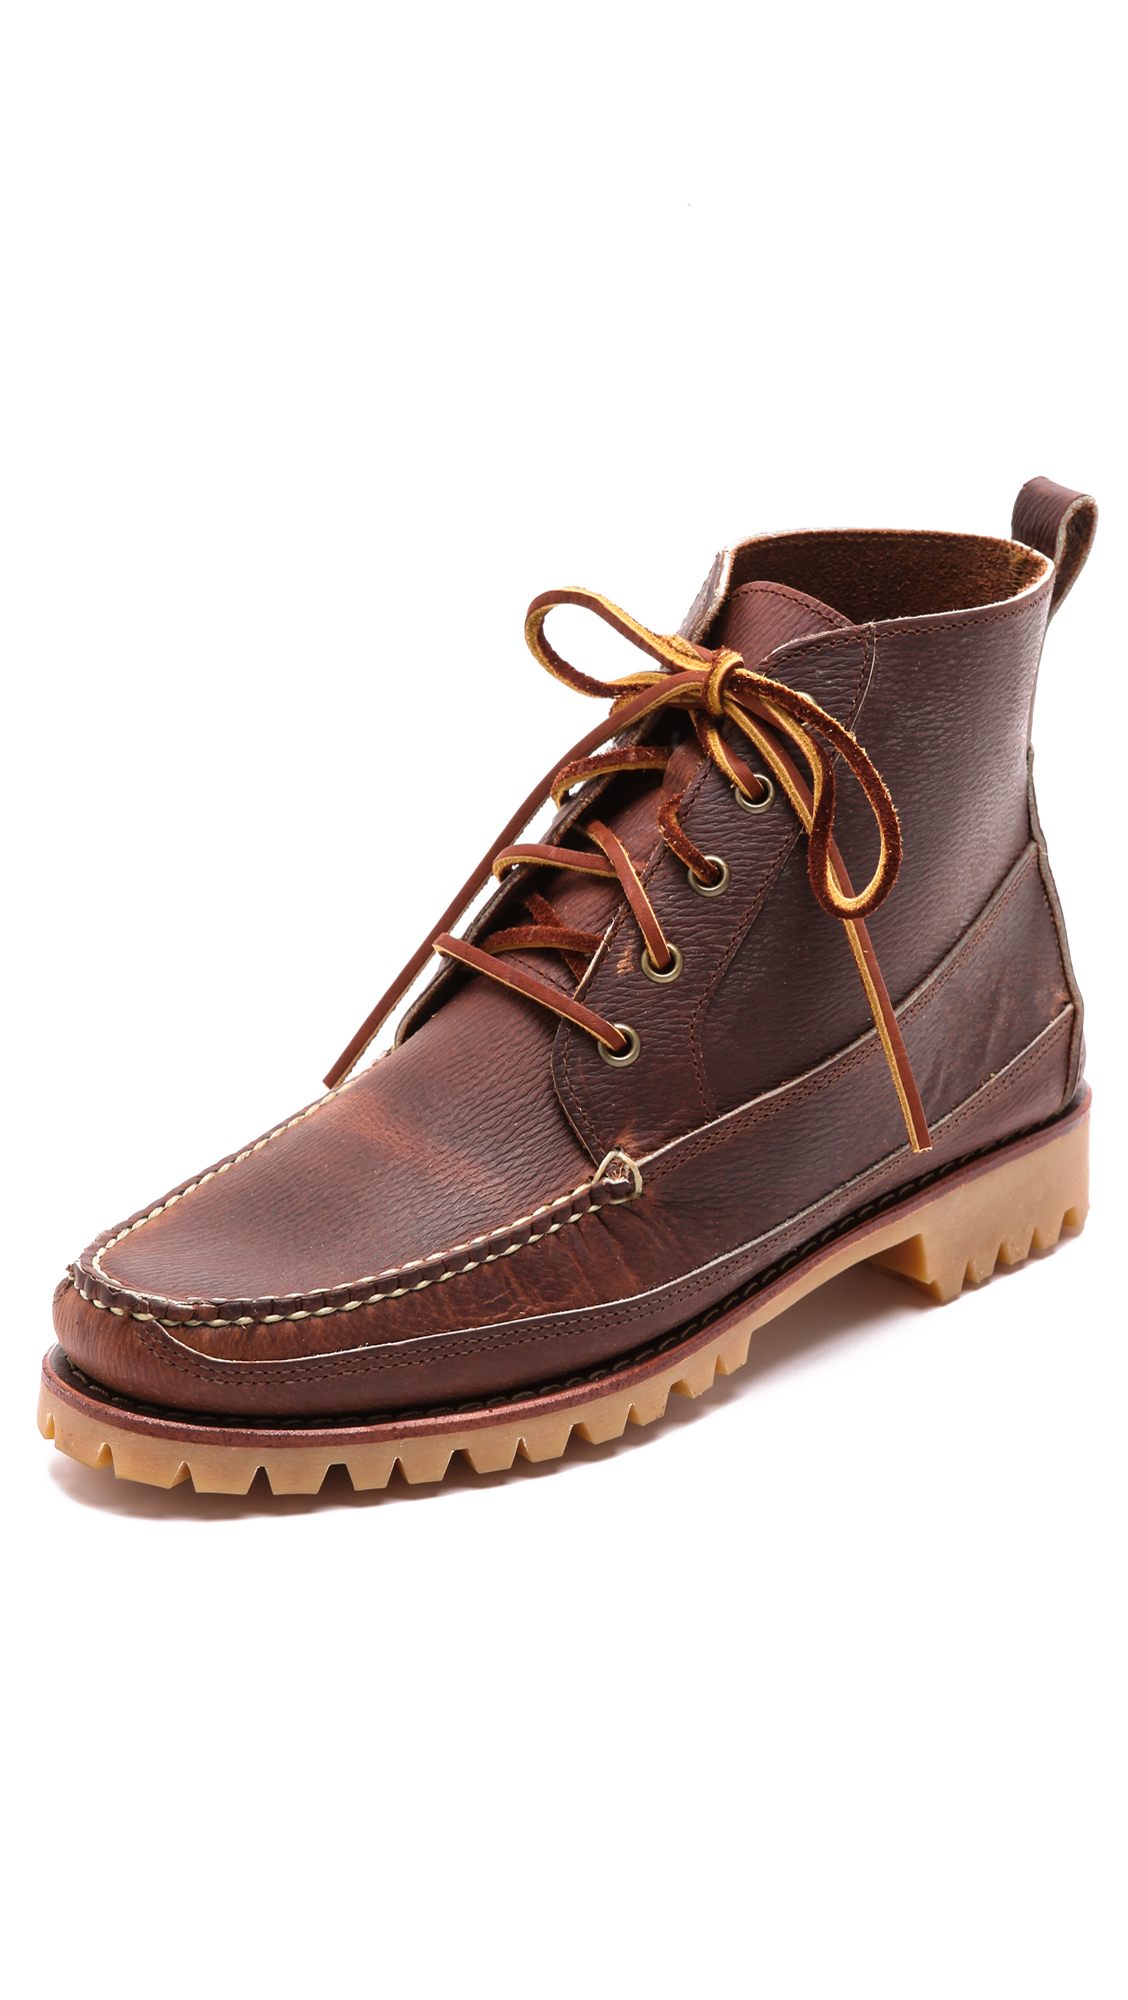 Eastland Kennebunk Usa Boots In Brown For Men Lyst